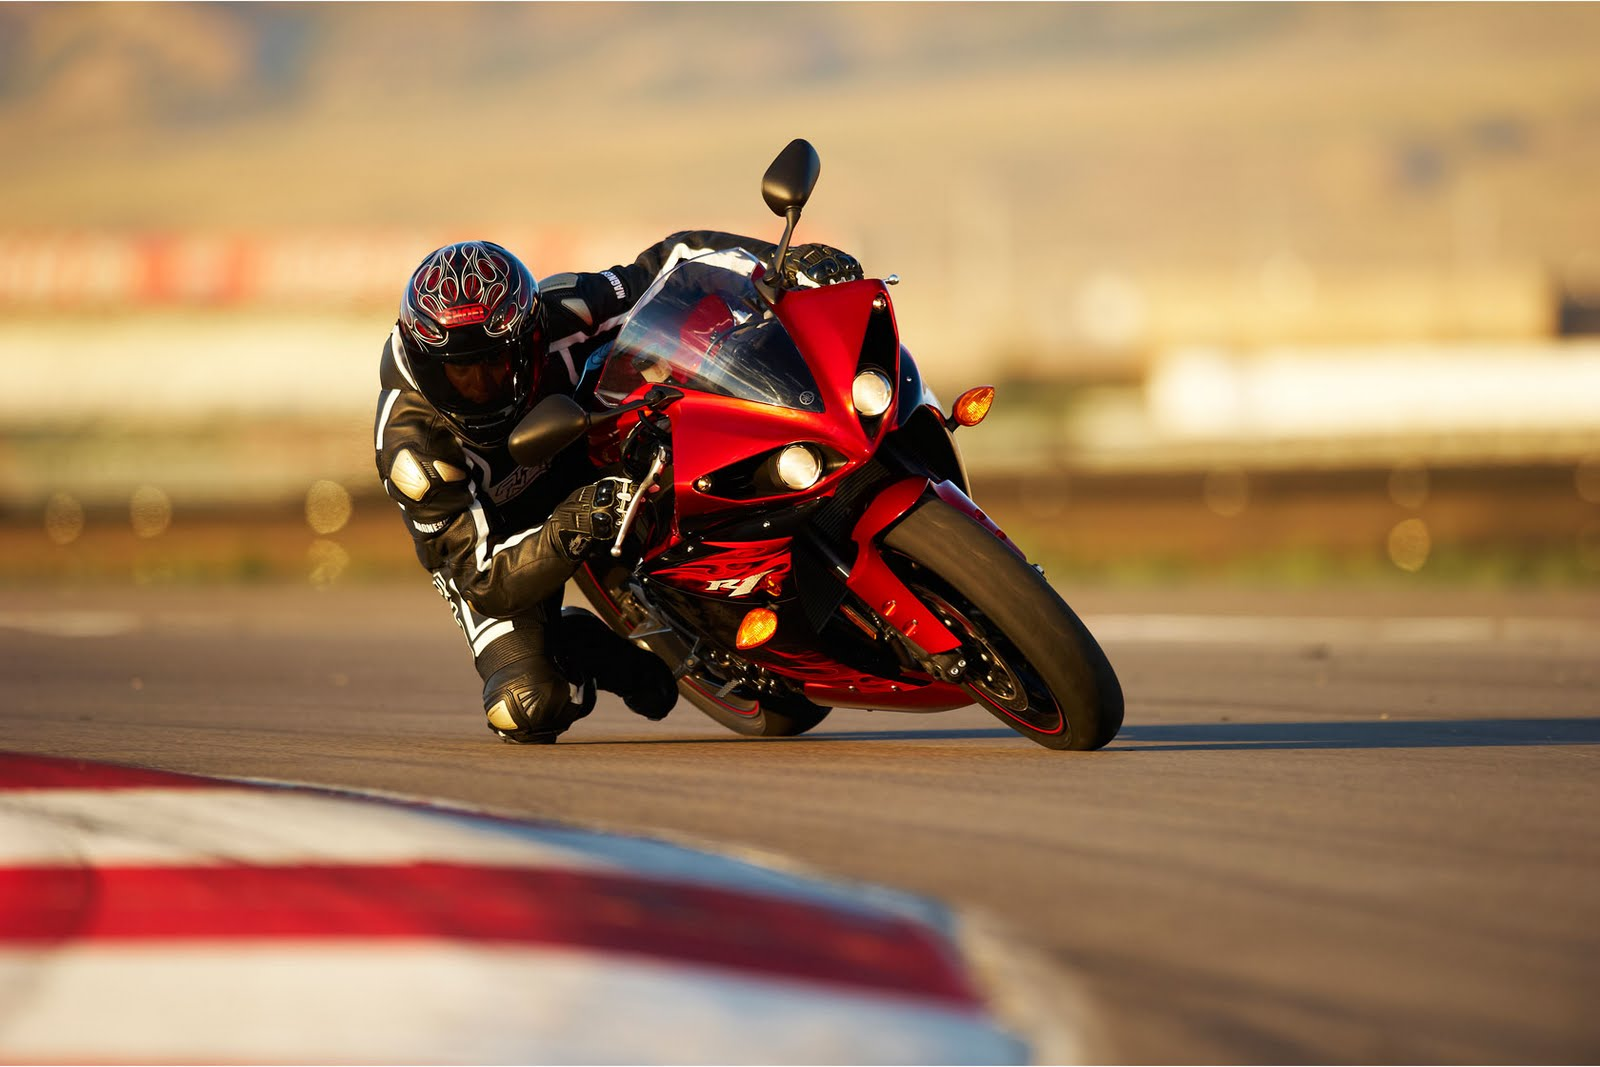 Yamaha Terbaru 2011 YZF R1 BIKES AND MOTOR SPORT PICTURE WALLPAPER 1600x1067